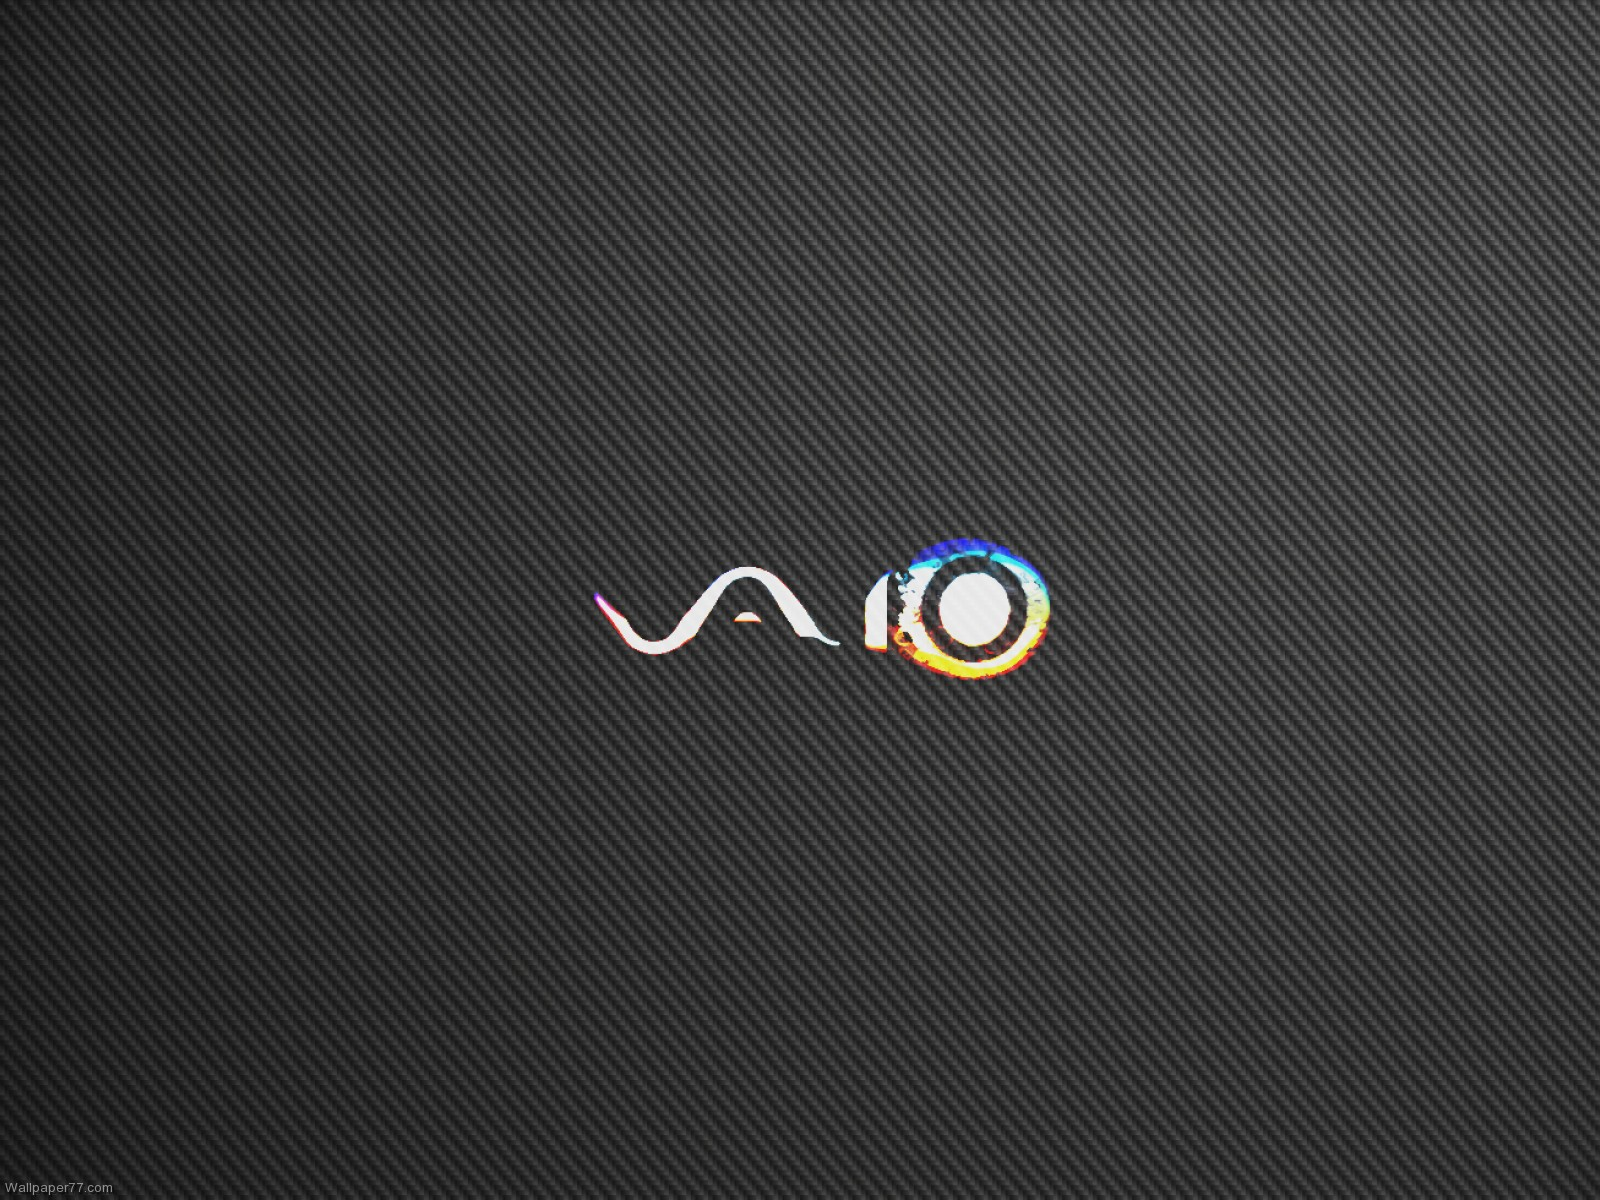 Dark Sony VAIO Background - Dark Sony VAIO Background